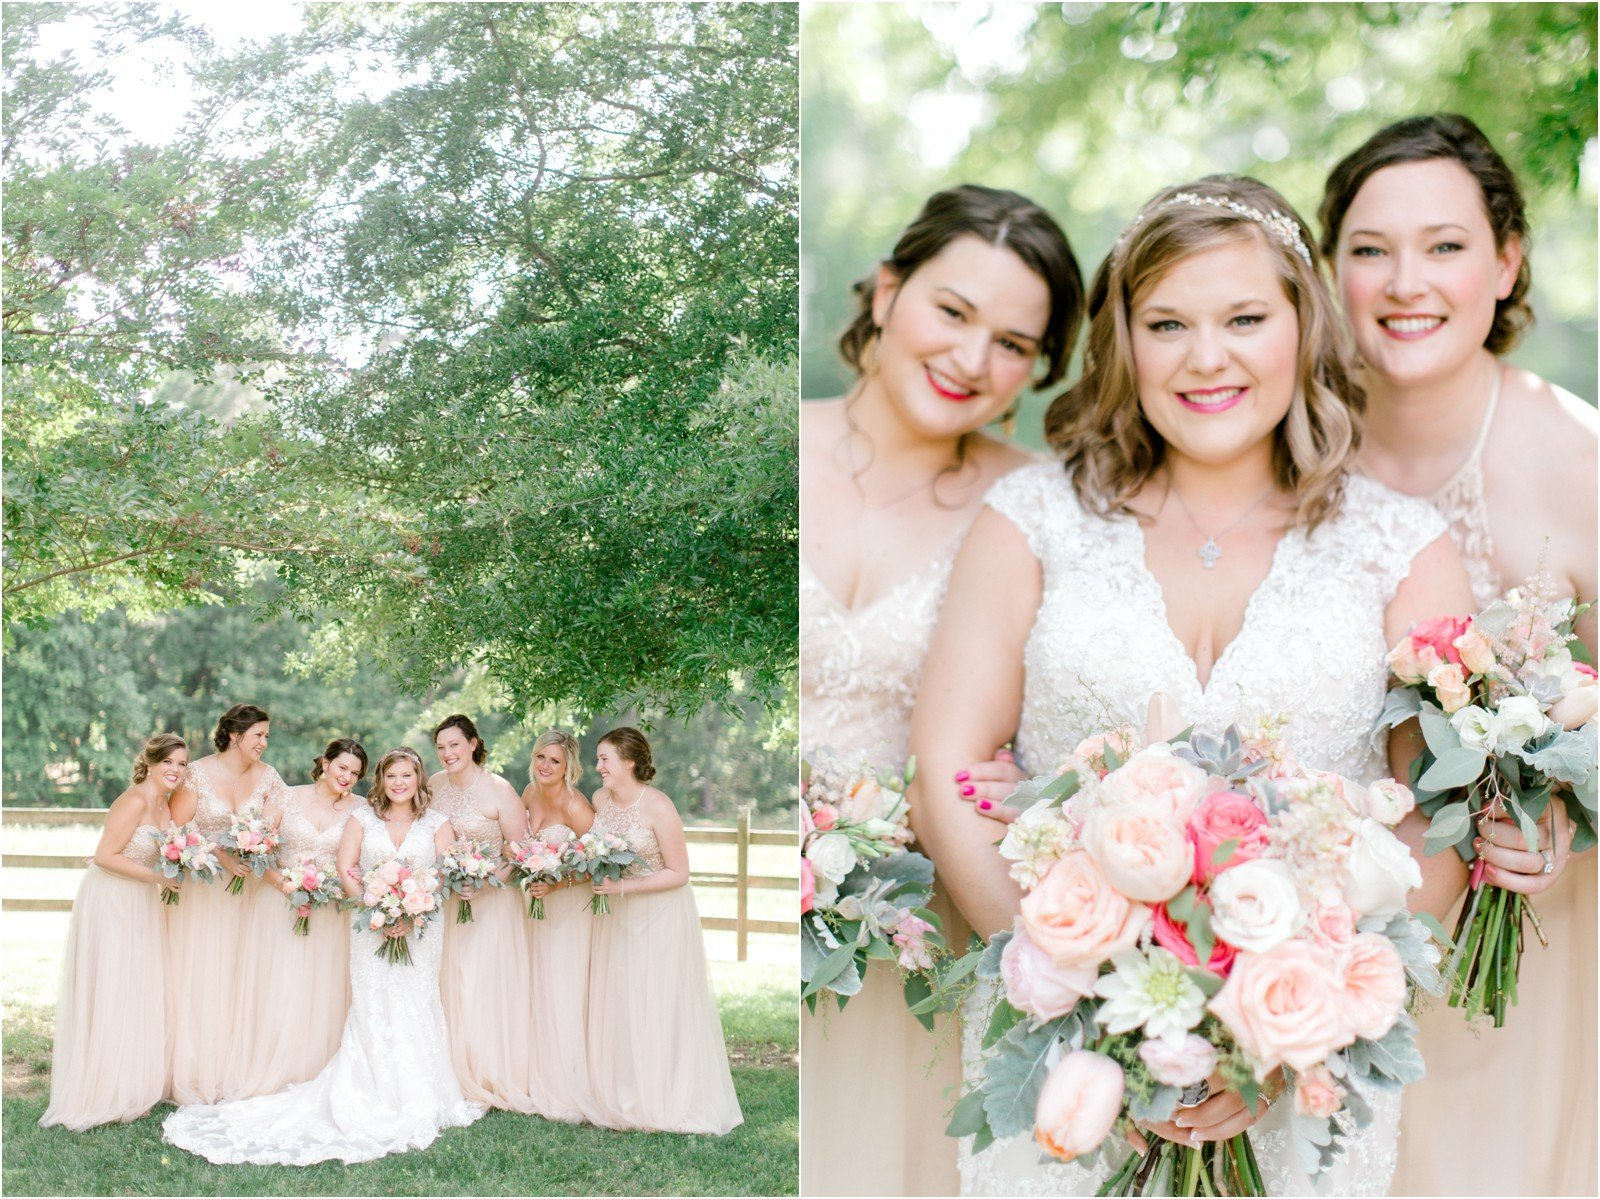 Chapel in the Woods Rustic Country Vintage Wedding Raleigh NC Plume Events Andrew & Tianna Photography-8